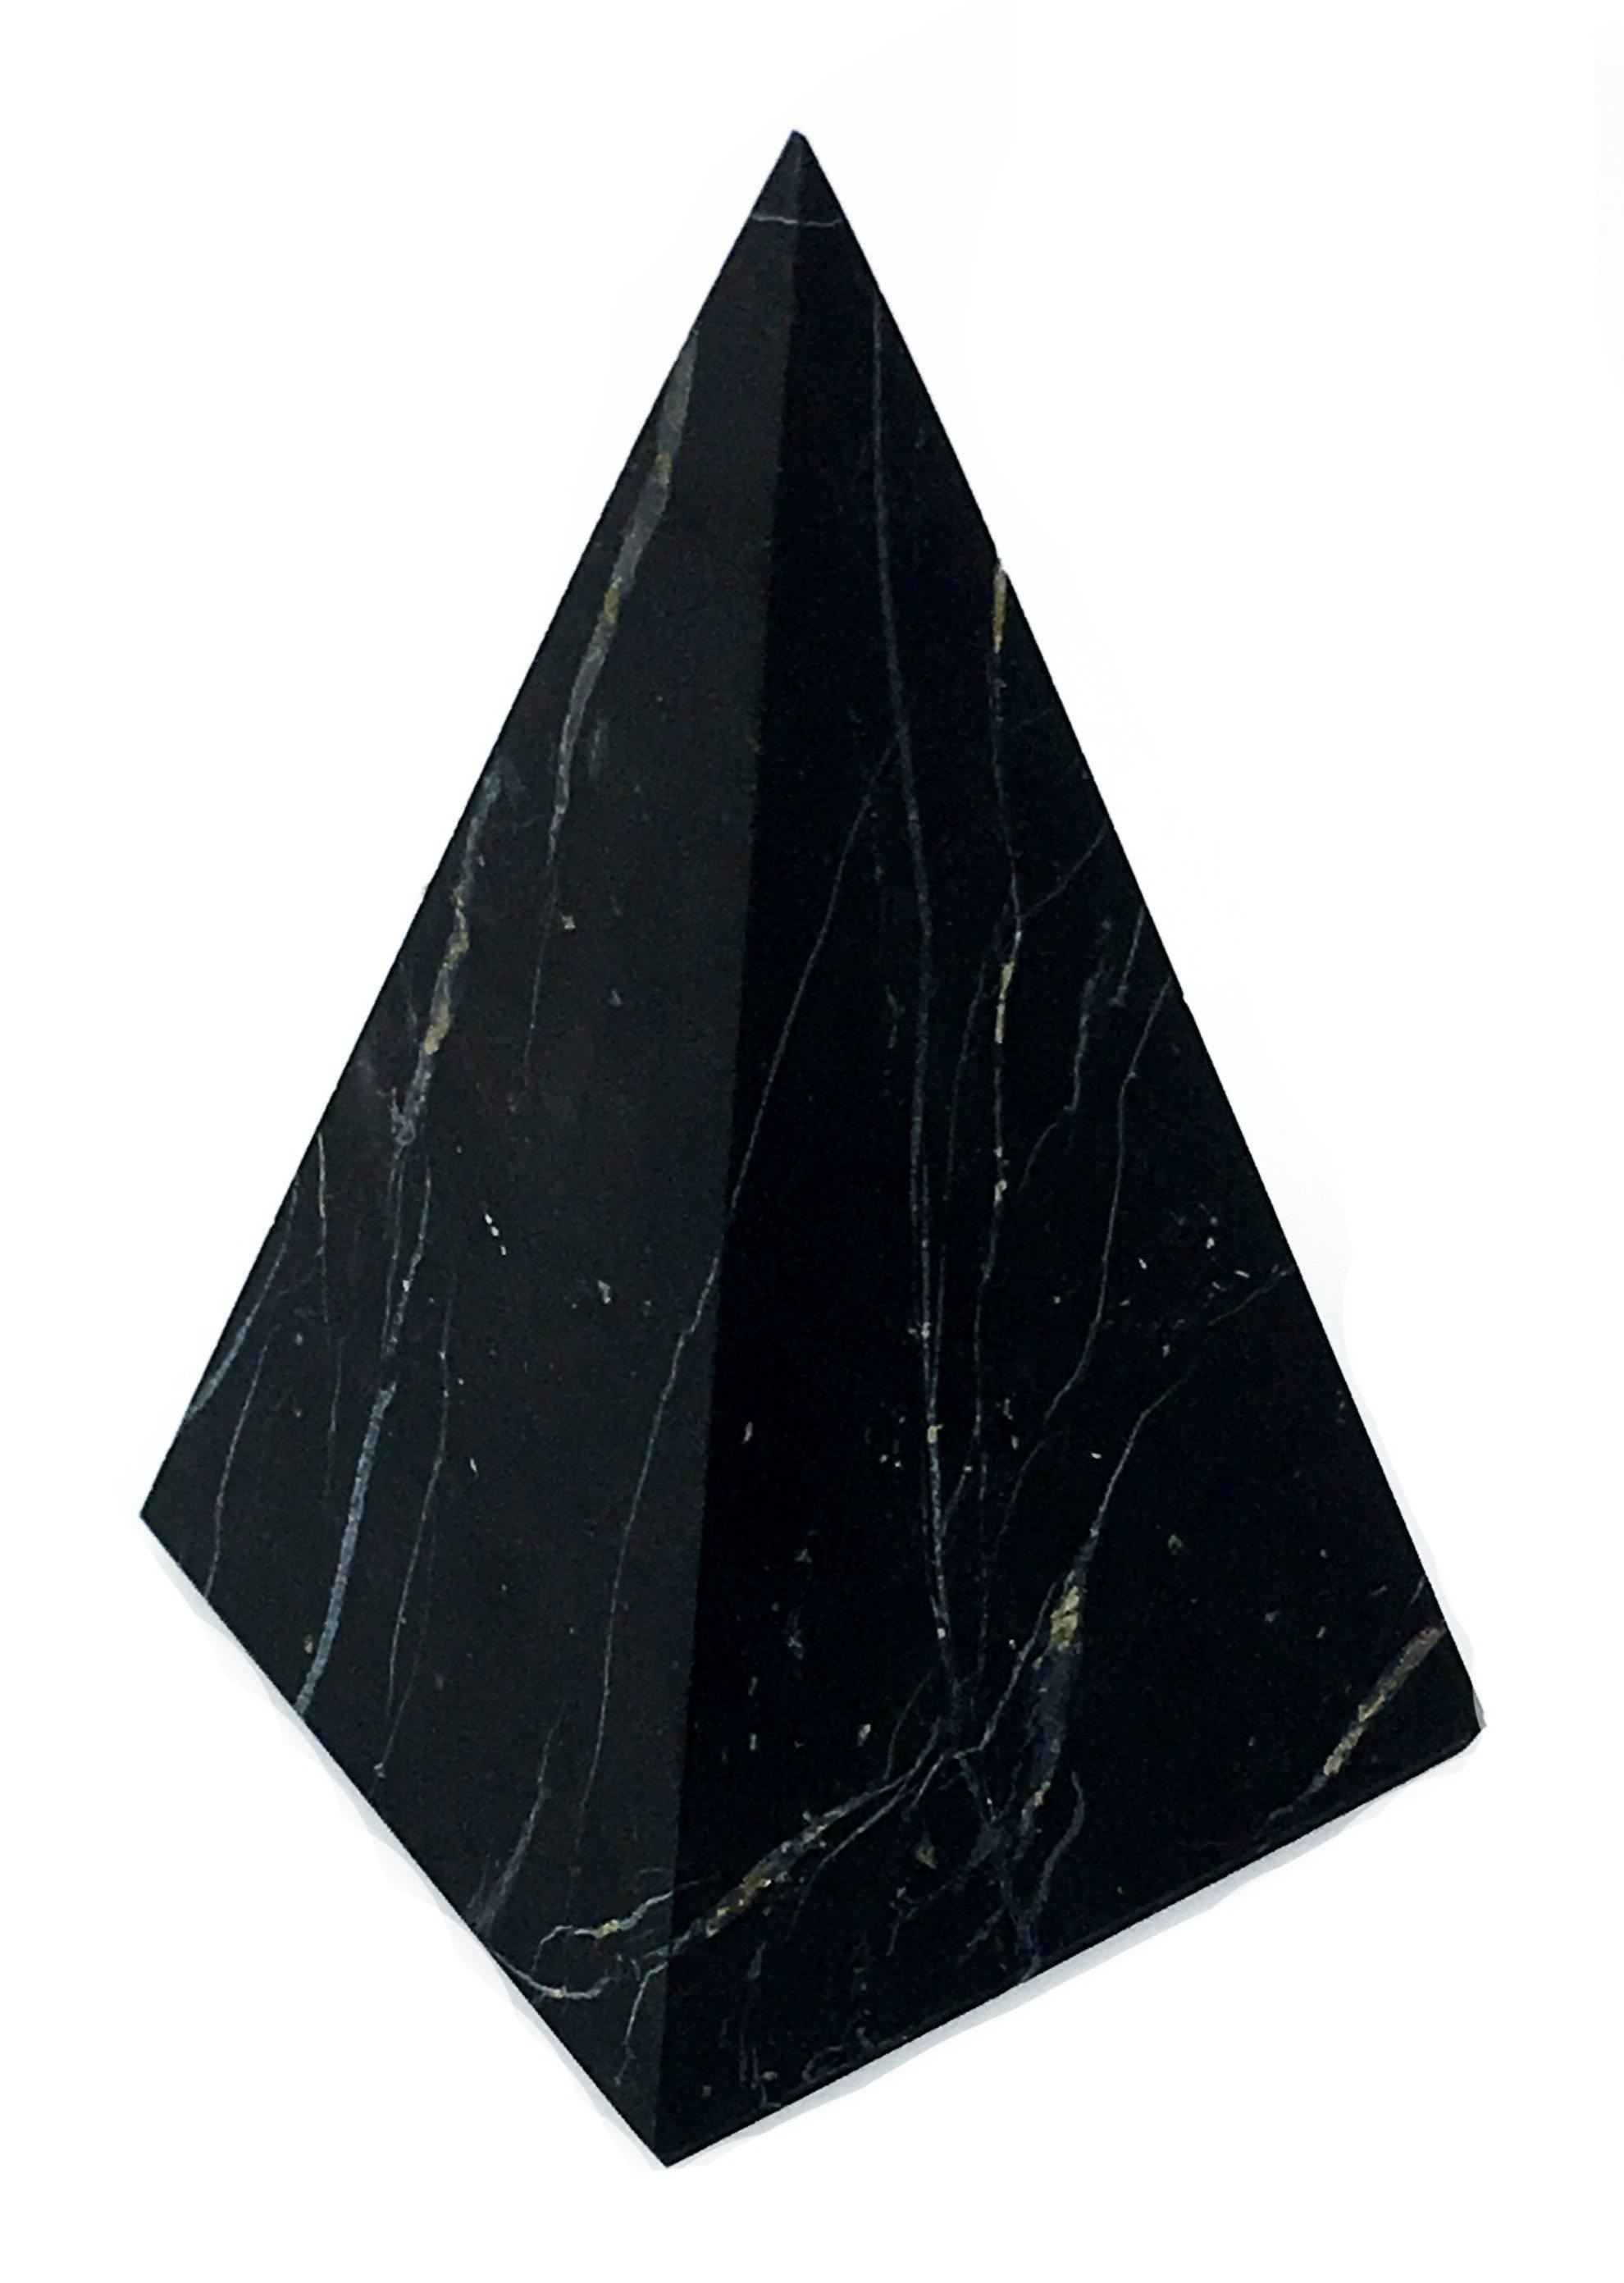 3.5 inch Shungite Pyramid Polished